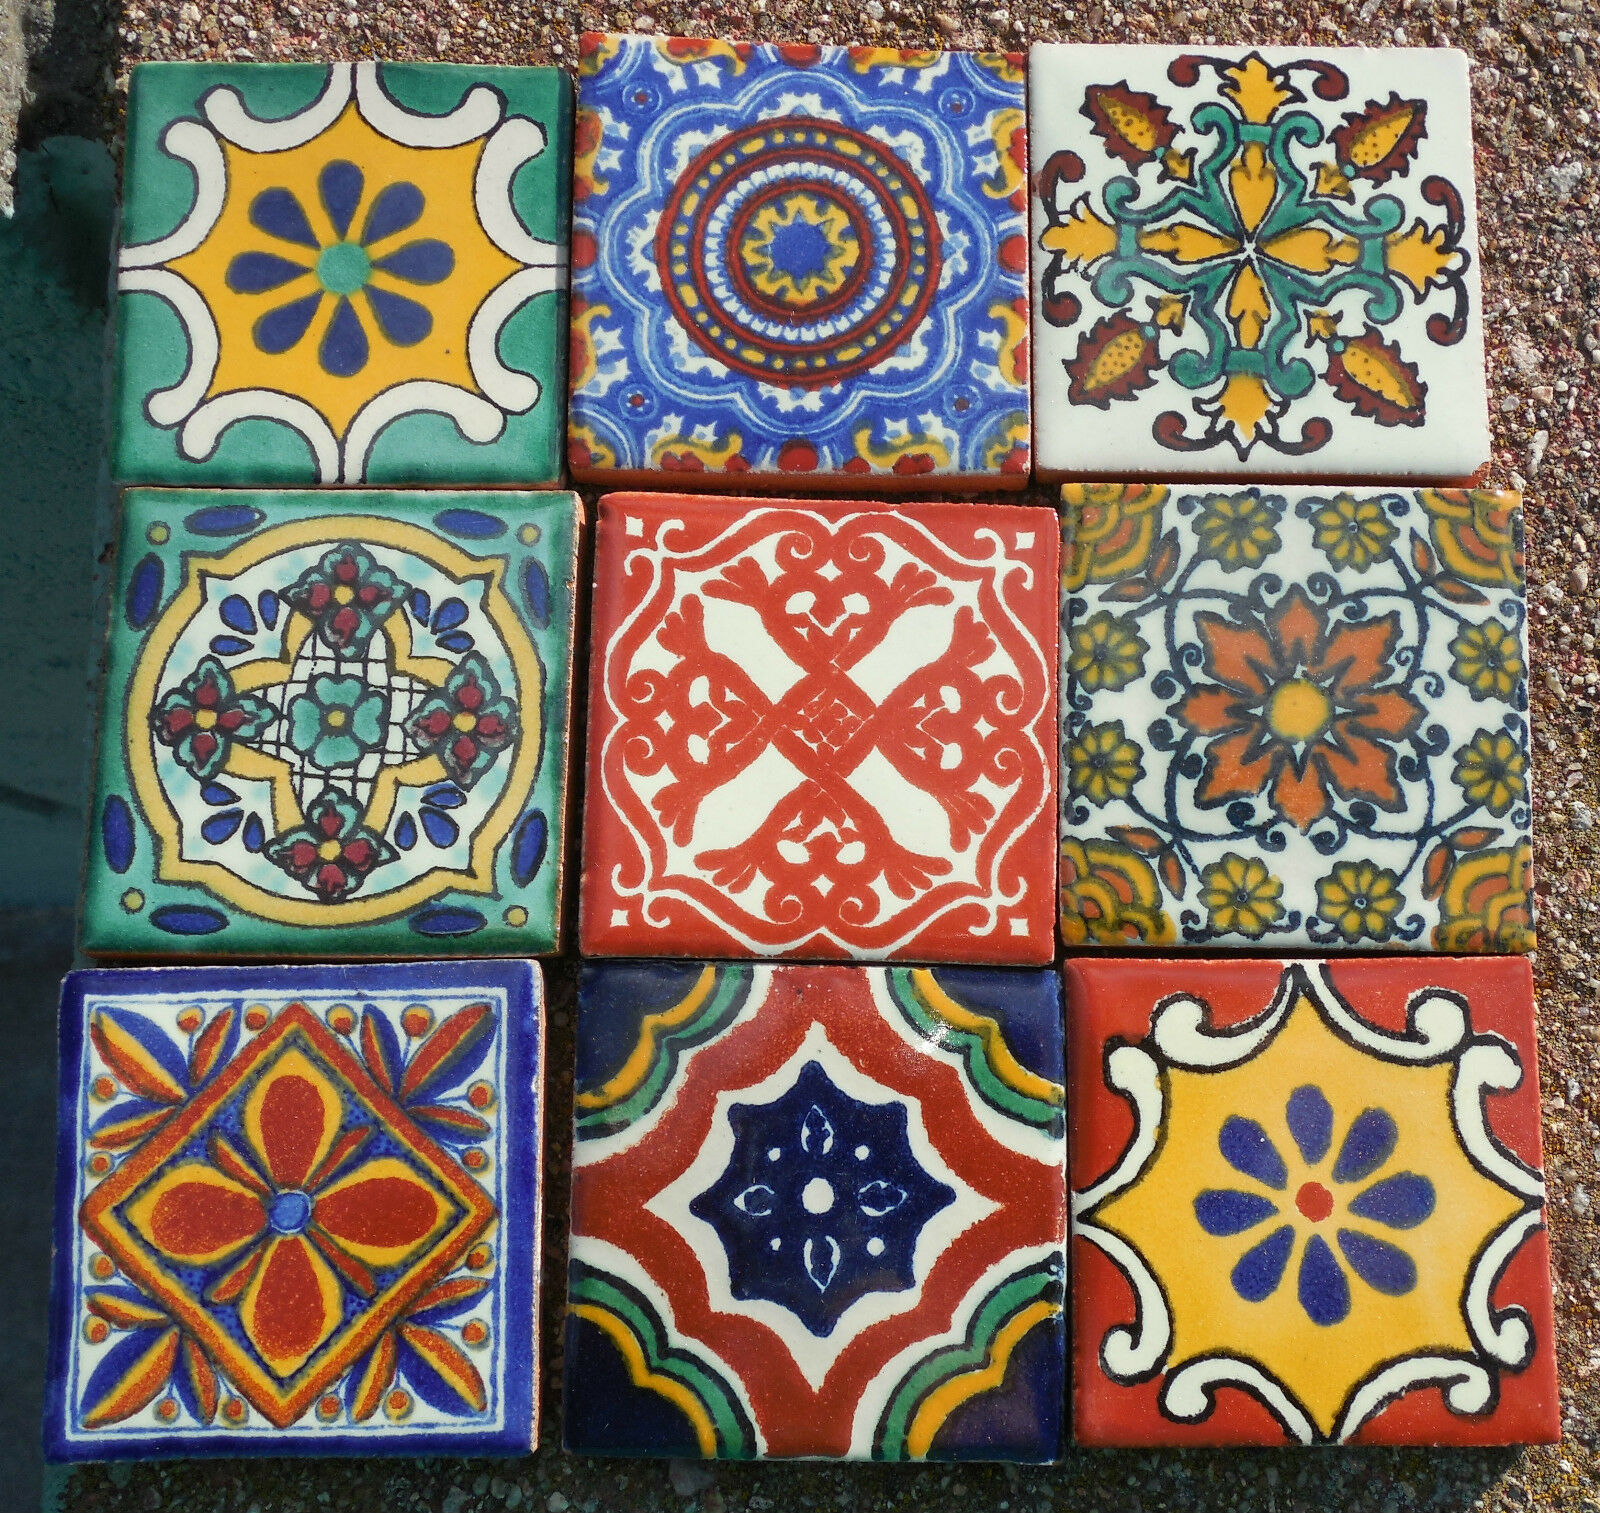 18MEXICAN TALAVERA POTTERY 2 tile Hand Painted Hand made  Venice Italy CD  eBay